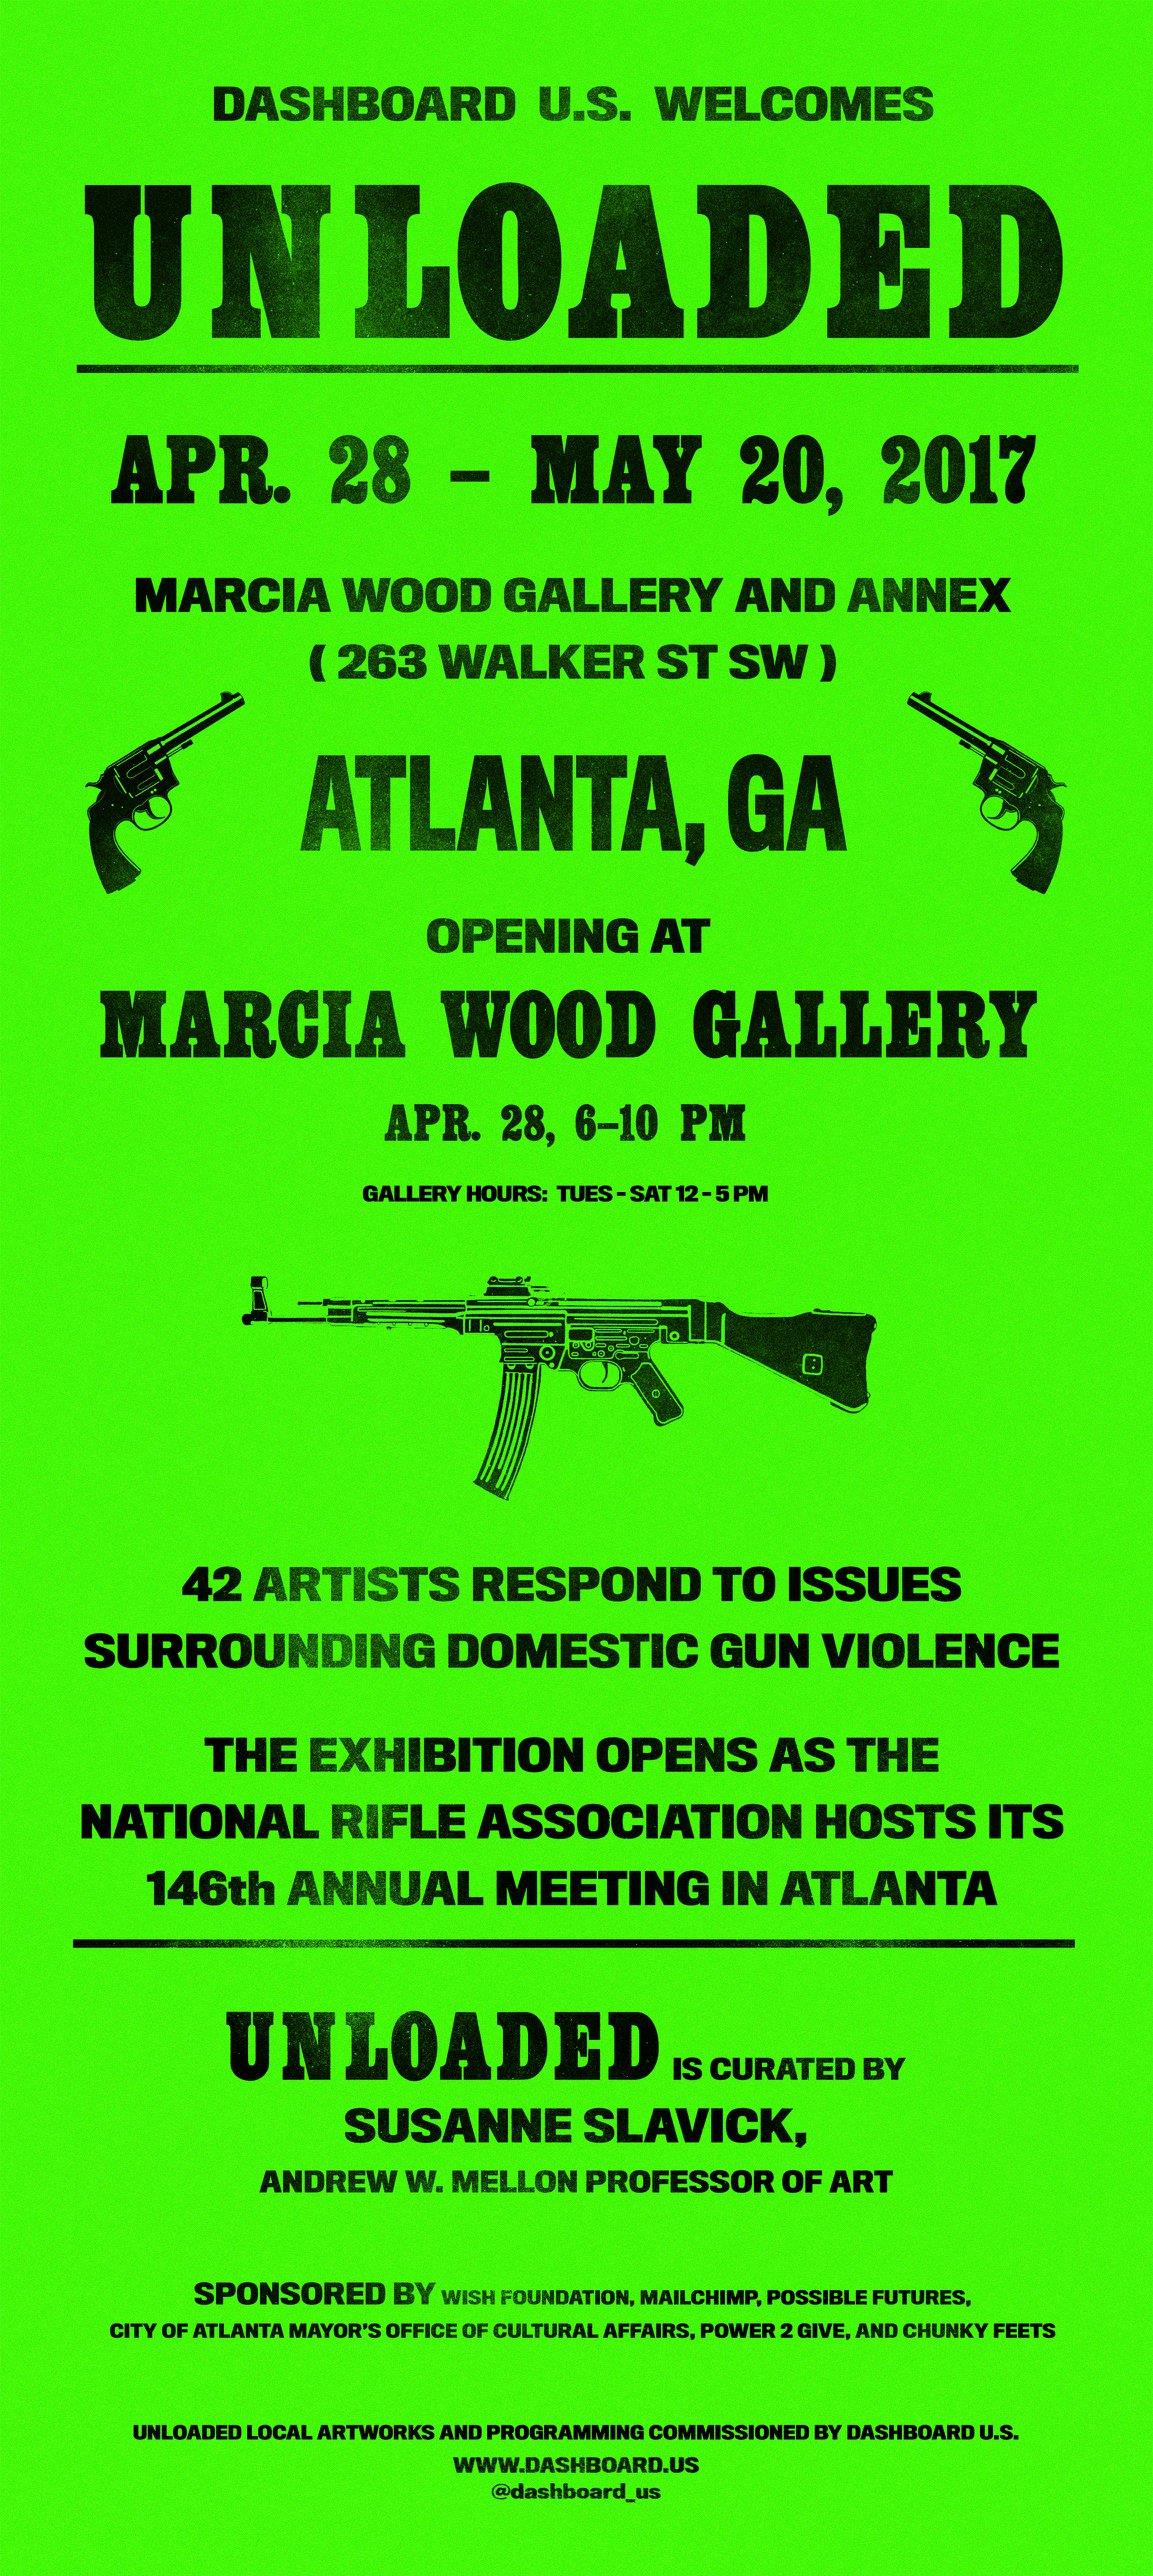 Dashboard unveils Unloaded,a multimedia group show that explores historical and social issues surrounding the availability, use, and impact of guns in our culture, this Friday night at Marcia Wood Gallery.